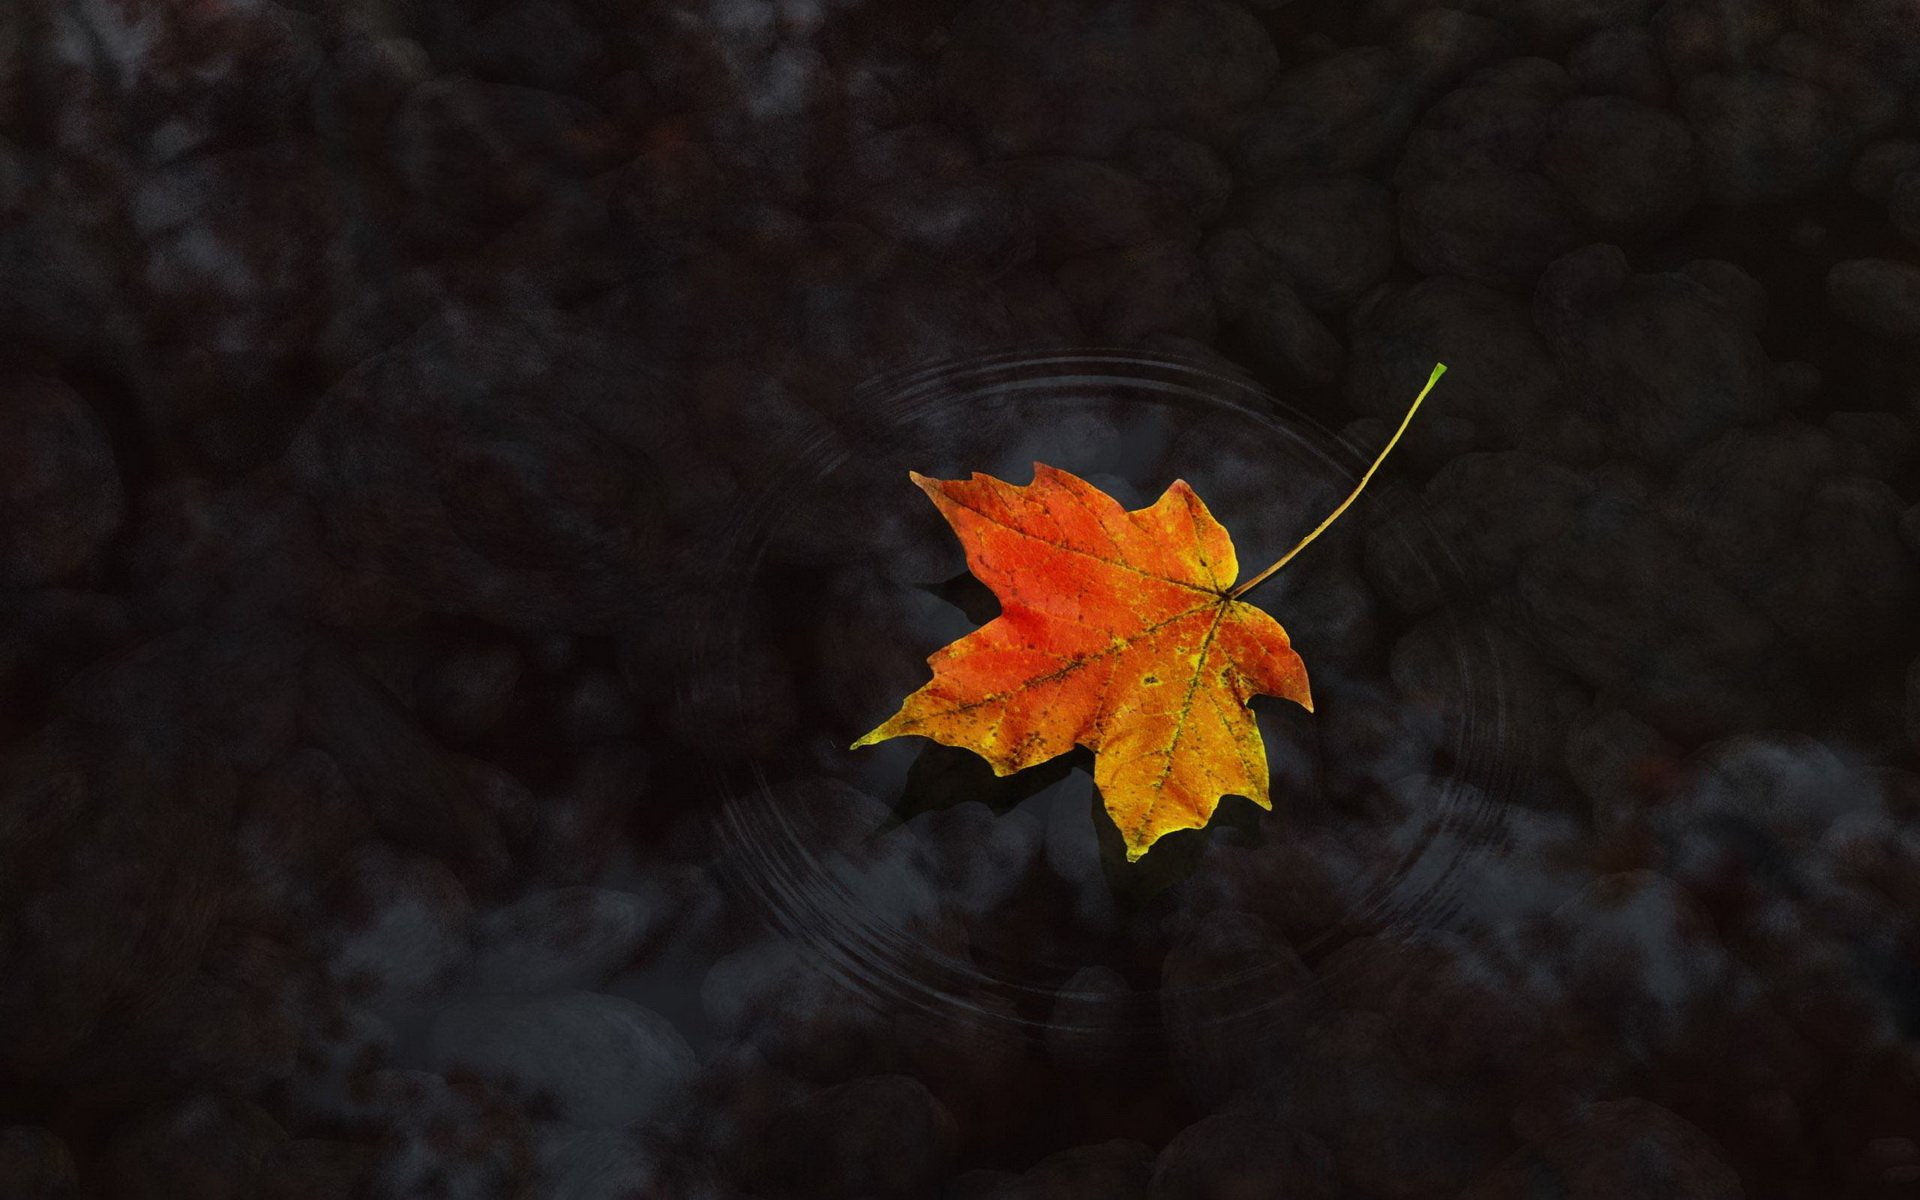 Falling Leaves Wallpaper For Iphone Maple Leaf On Water Hd Wallpaper Background Image